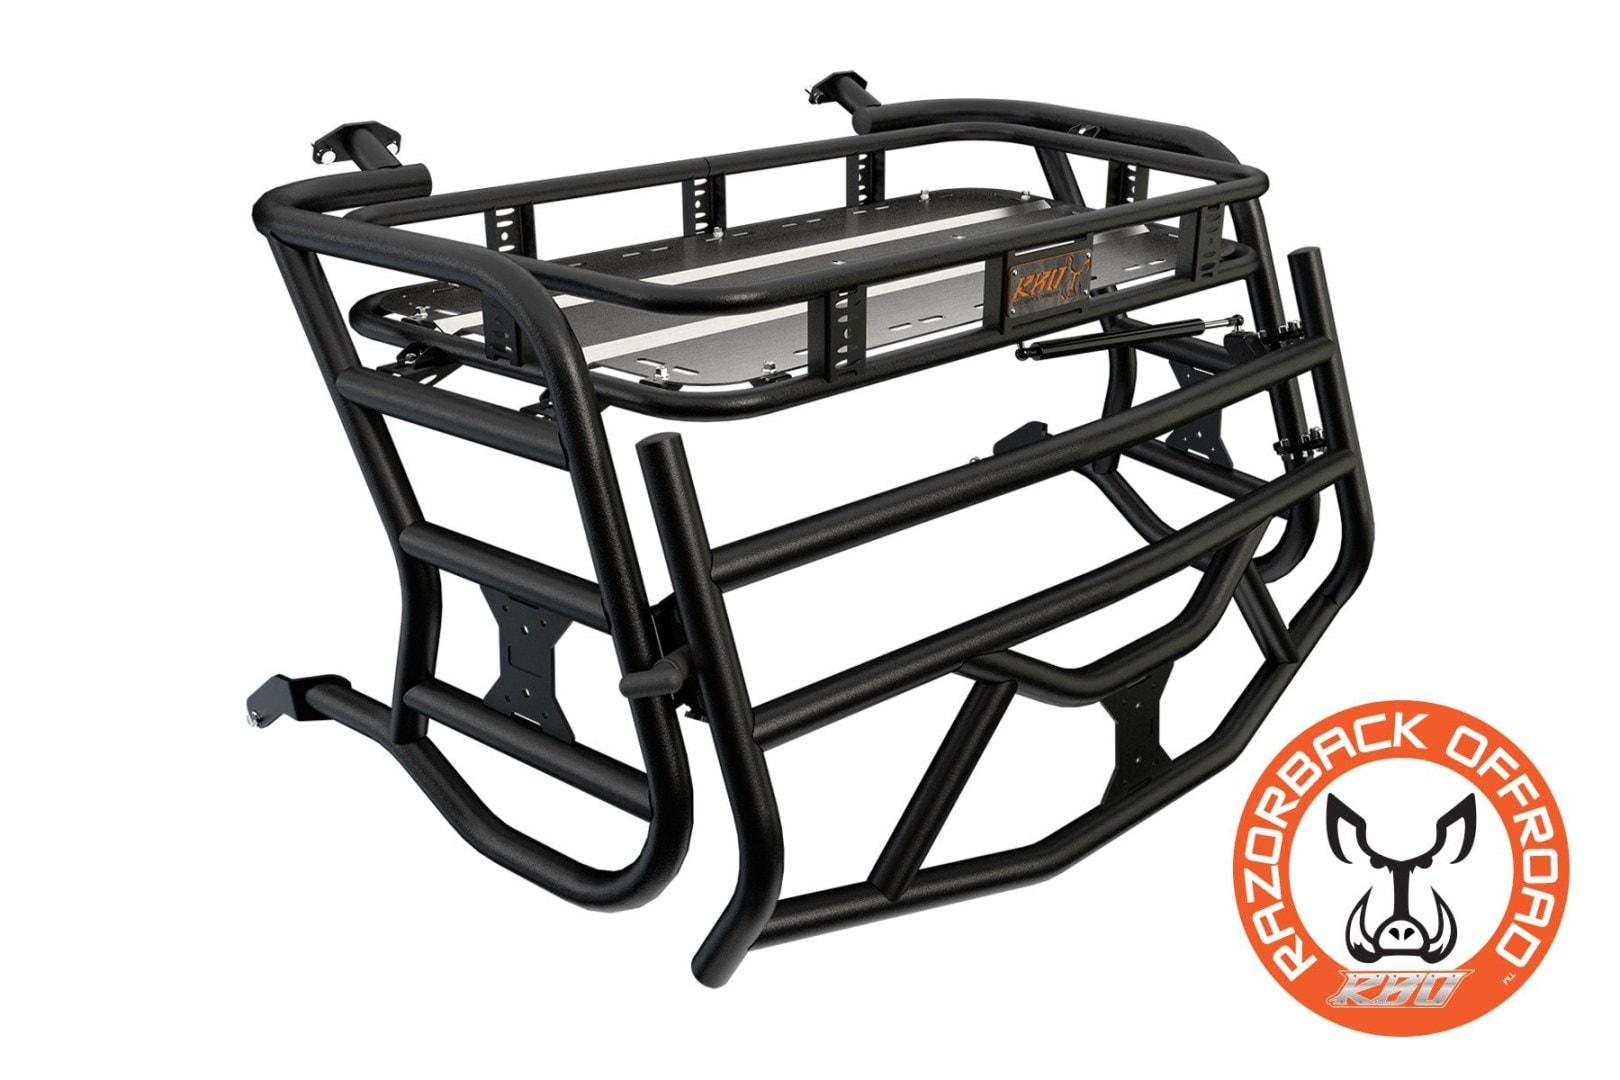 Razorback Offroad Expedition Rack Polaris Rzr 900 900 S